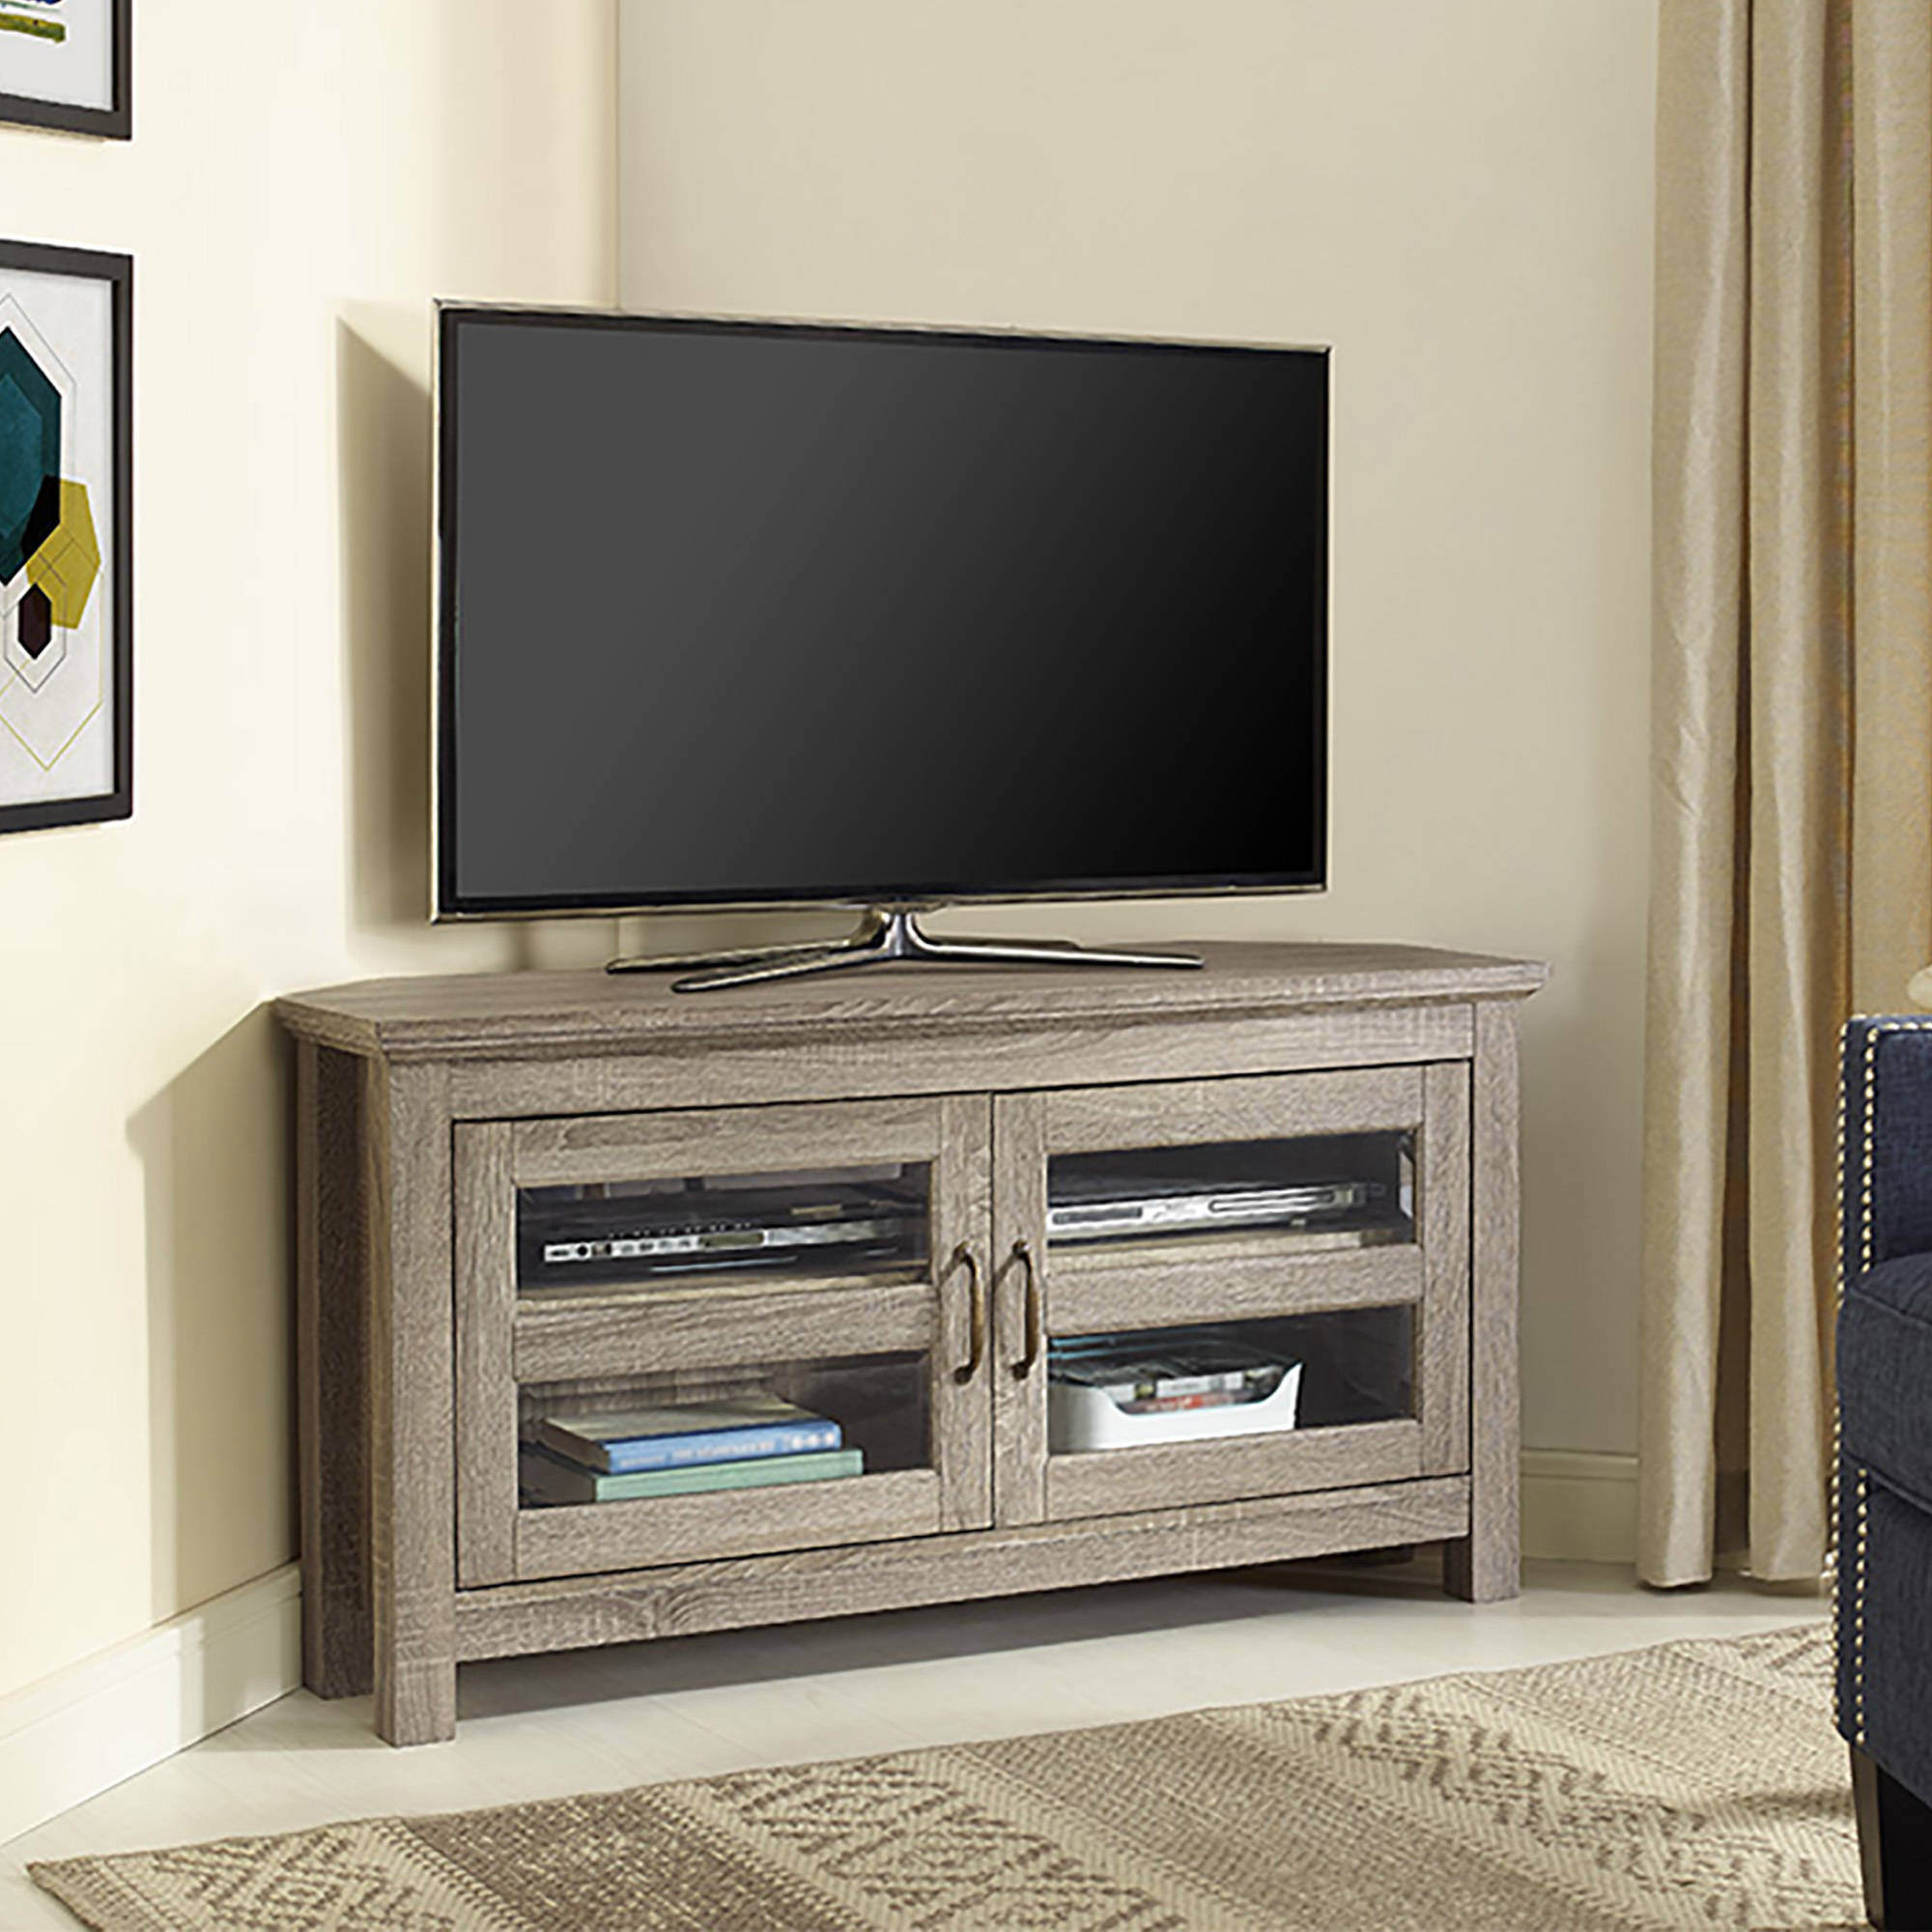 Walker Edison Black Corner Tv Stand For Tvs Up To 48 Intended For Contemporary Black Tv Stands Corner Glass Shelf (View 12 of 20)